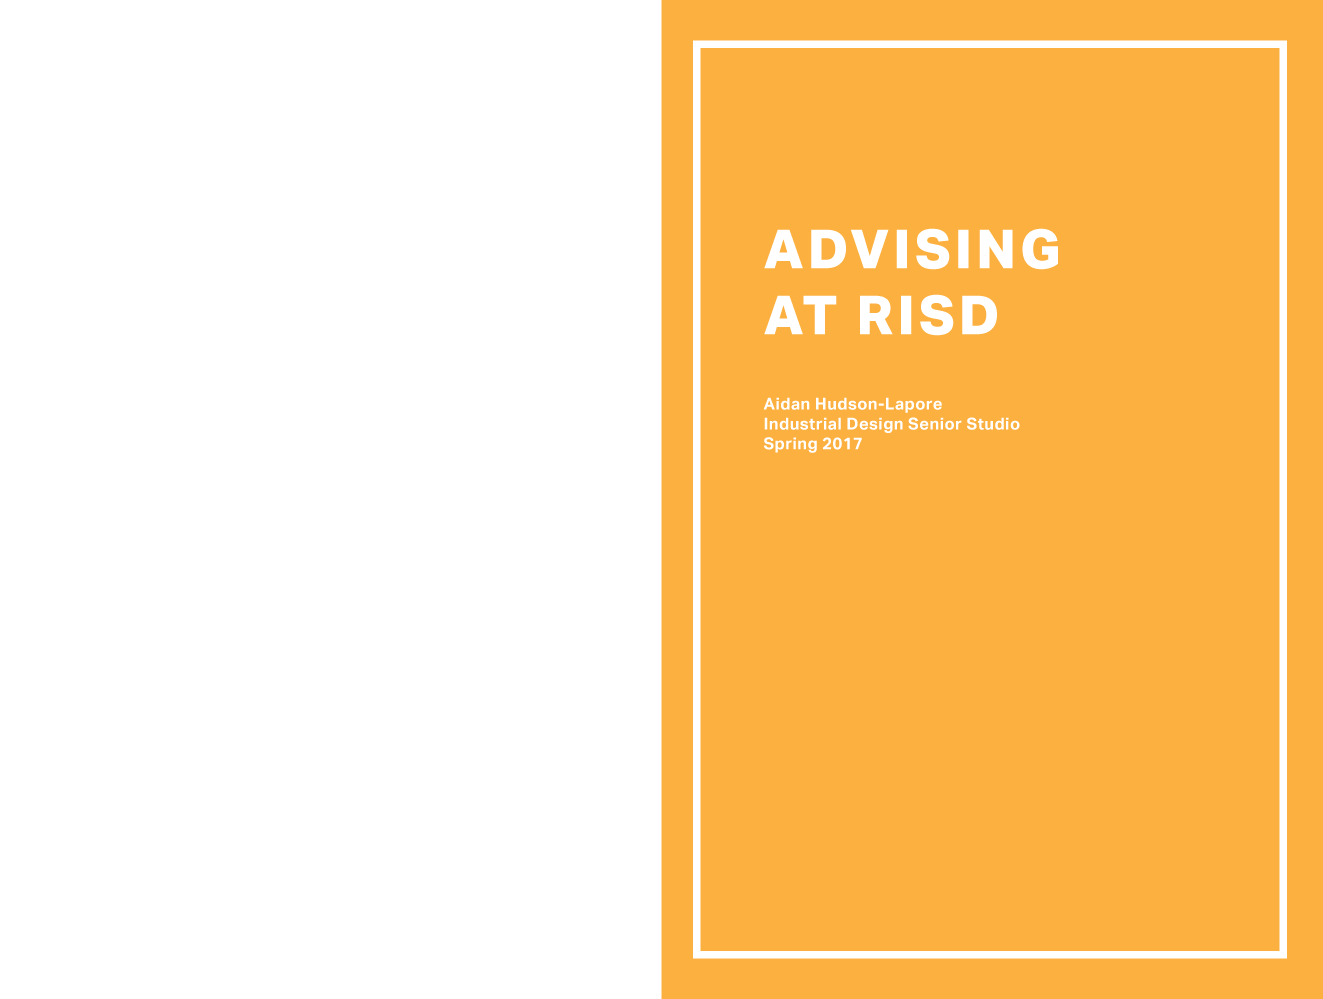 Advising-at-RISD_spread1_R